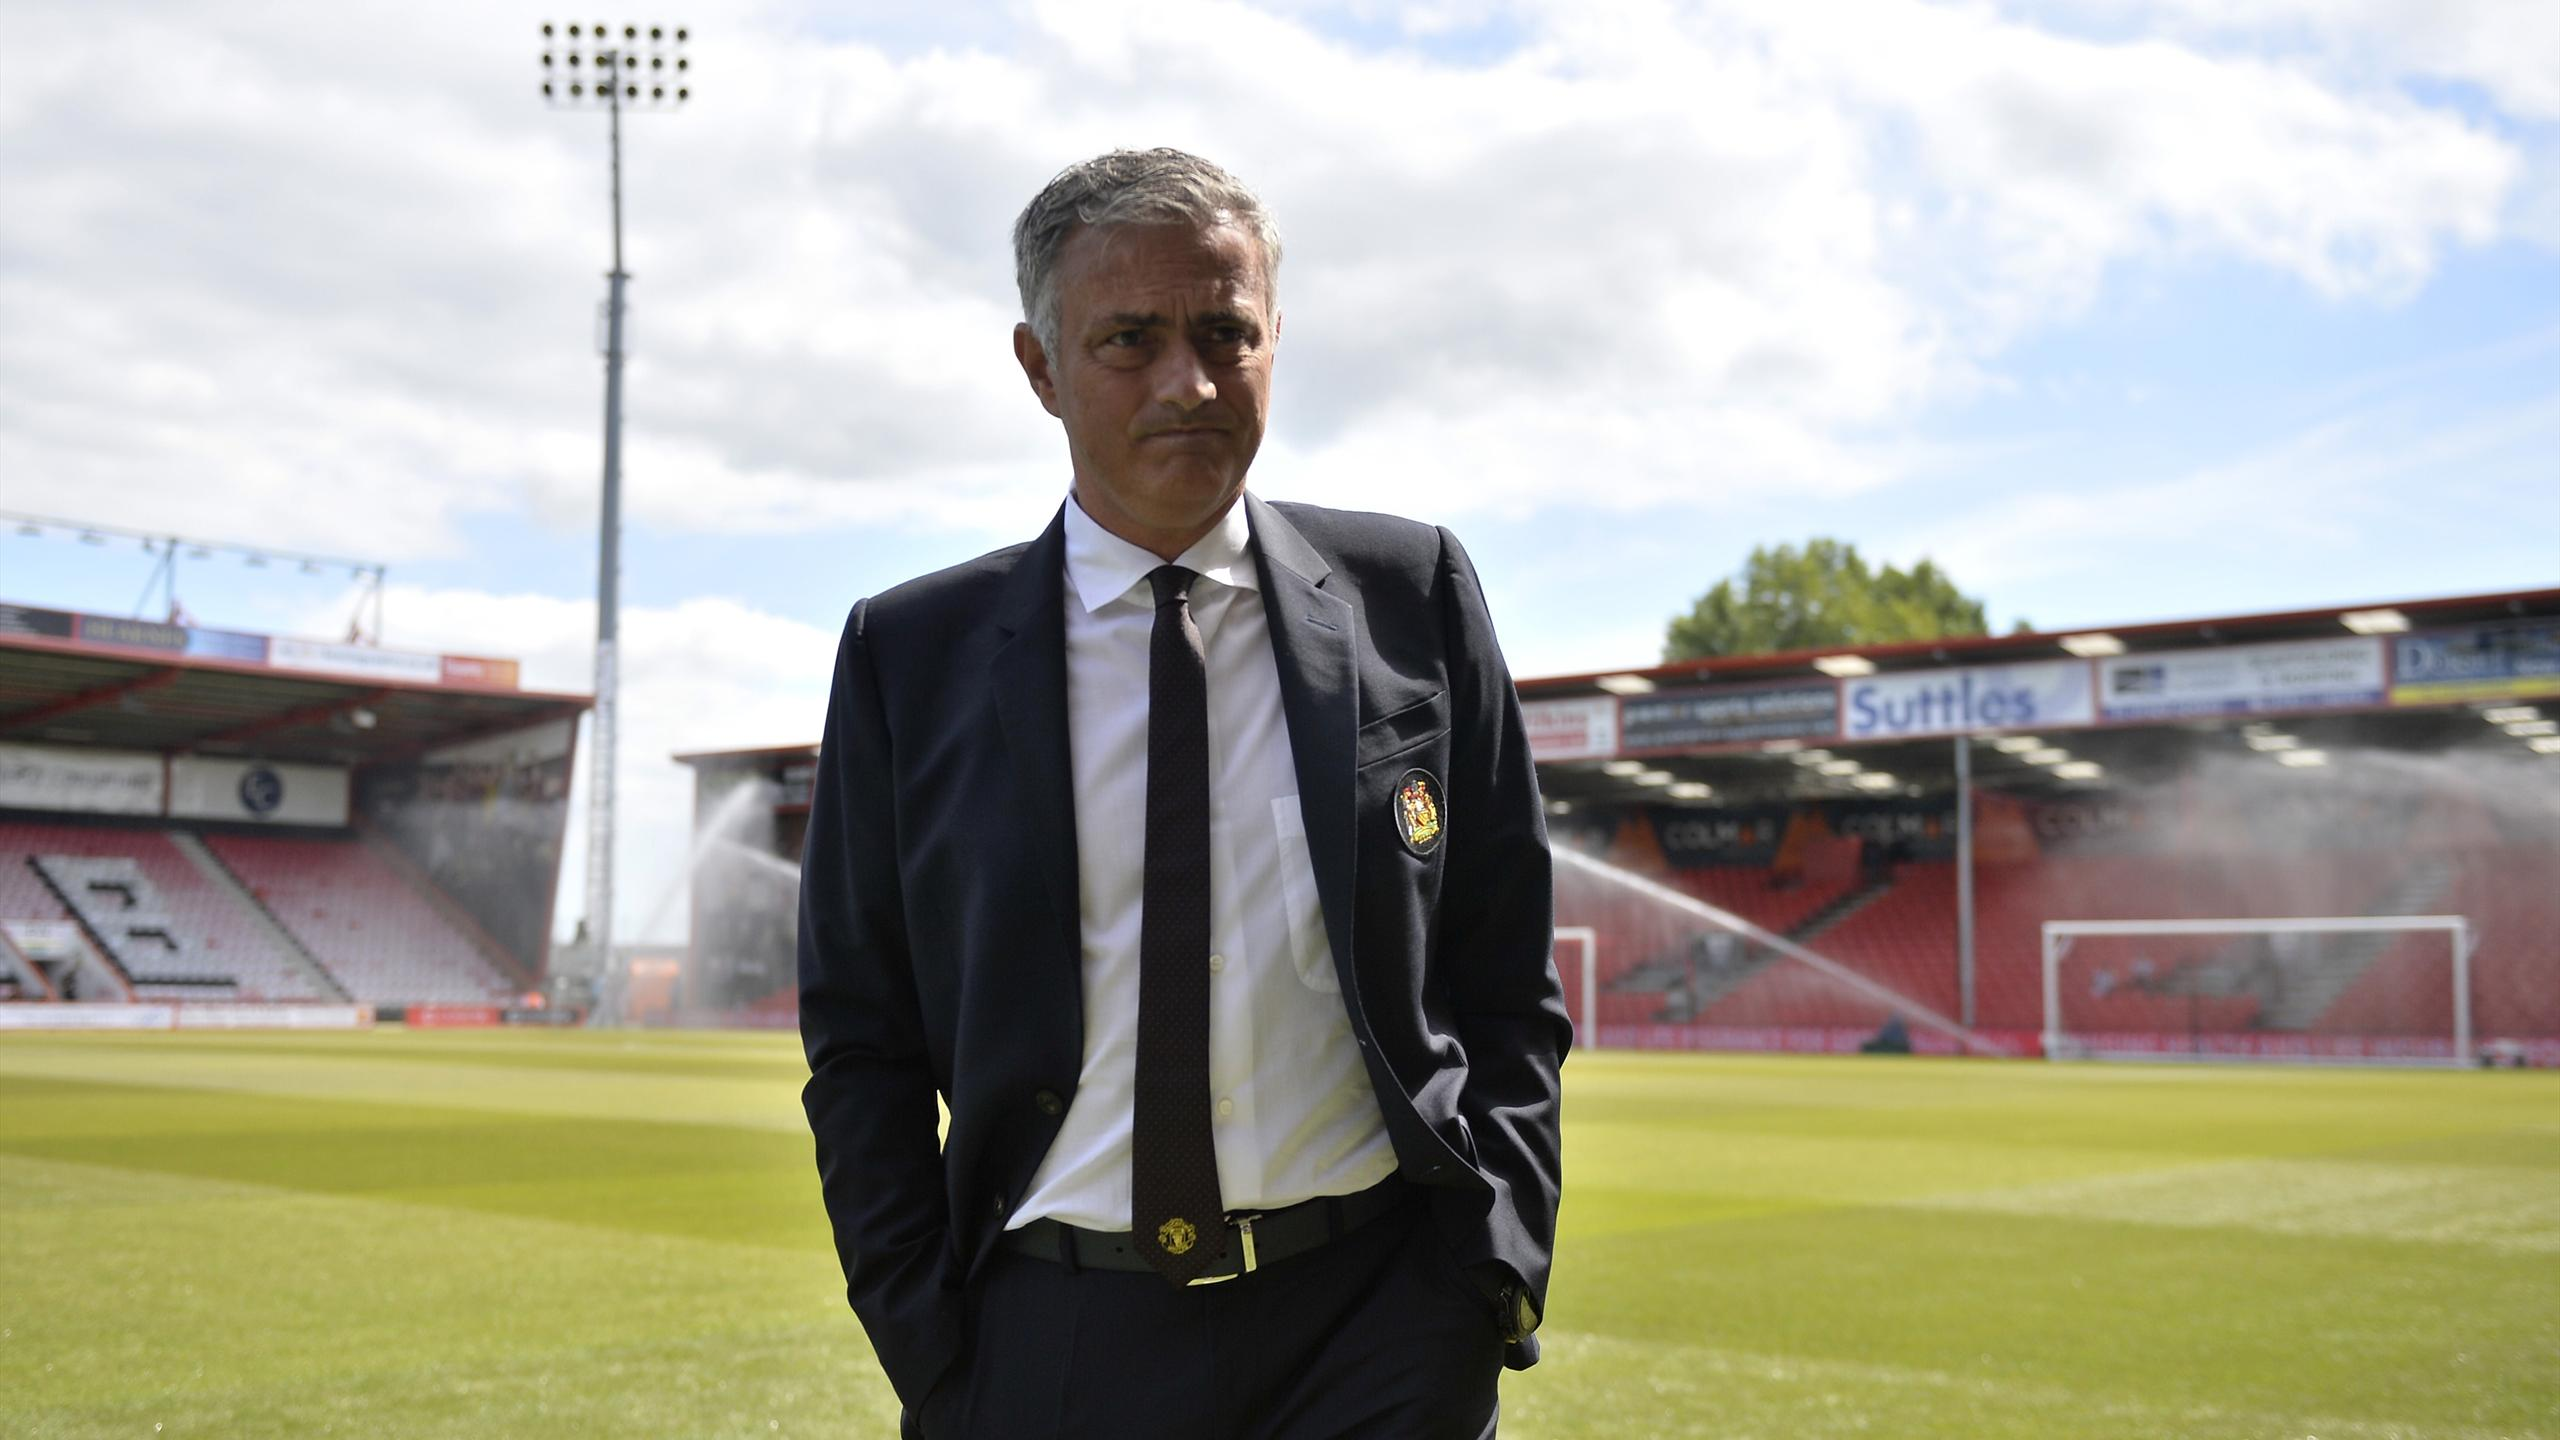 Manchester United manager Jose Mourinho on the pitch before the match